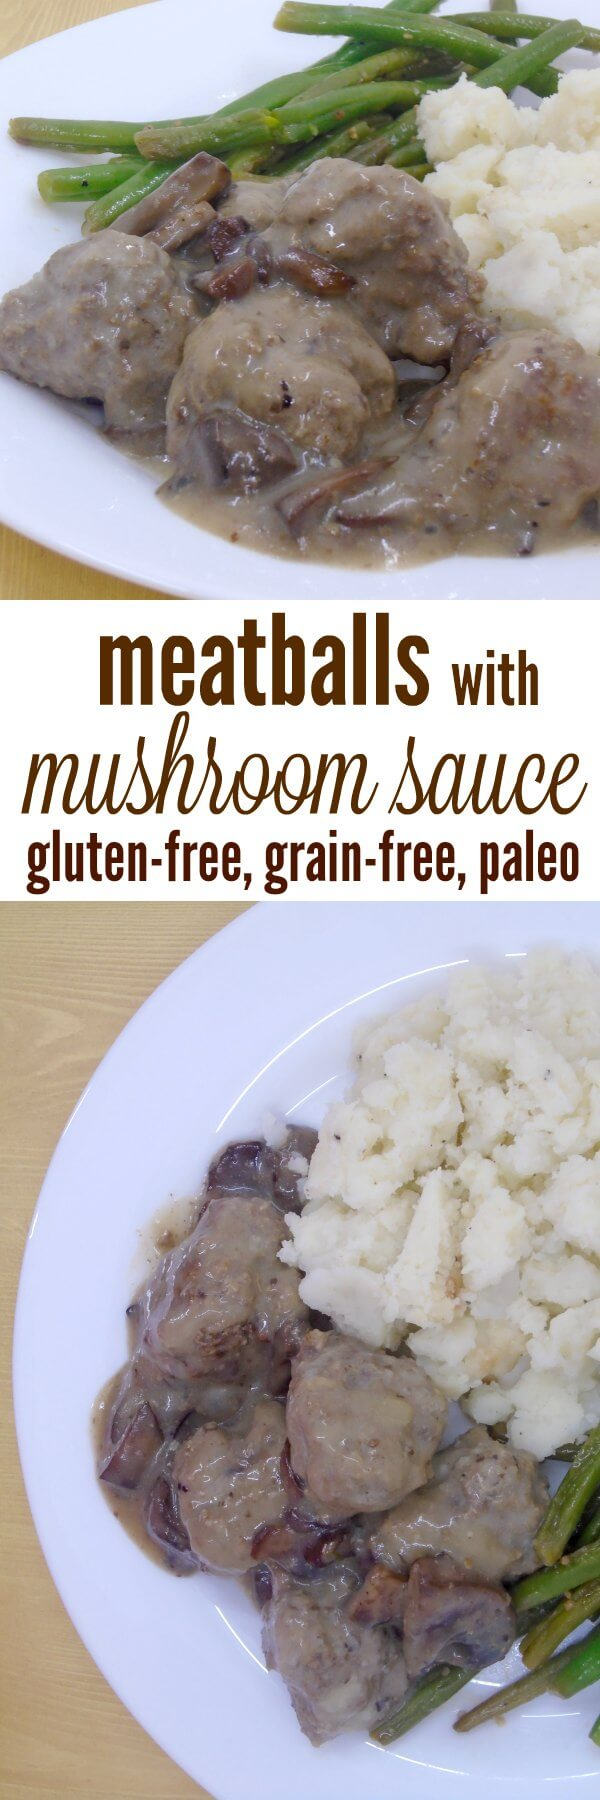 Grain-free meatballs with mushroom sauce - an easy recipe for wheat free, gluten free, or paleo families. Keep some grain free meatballs in the freezer for a quick and easy family dinner.